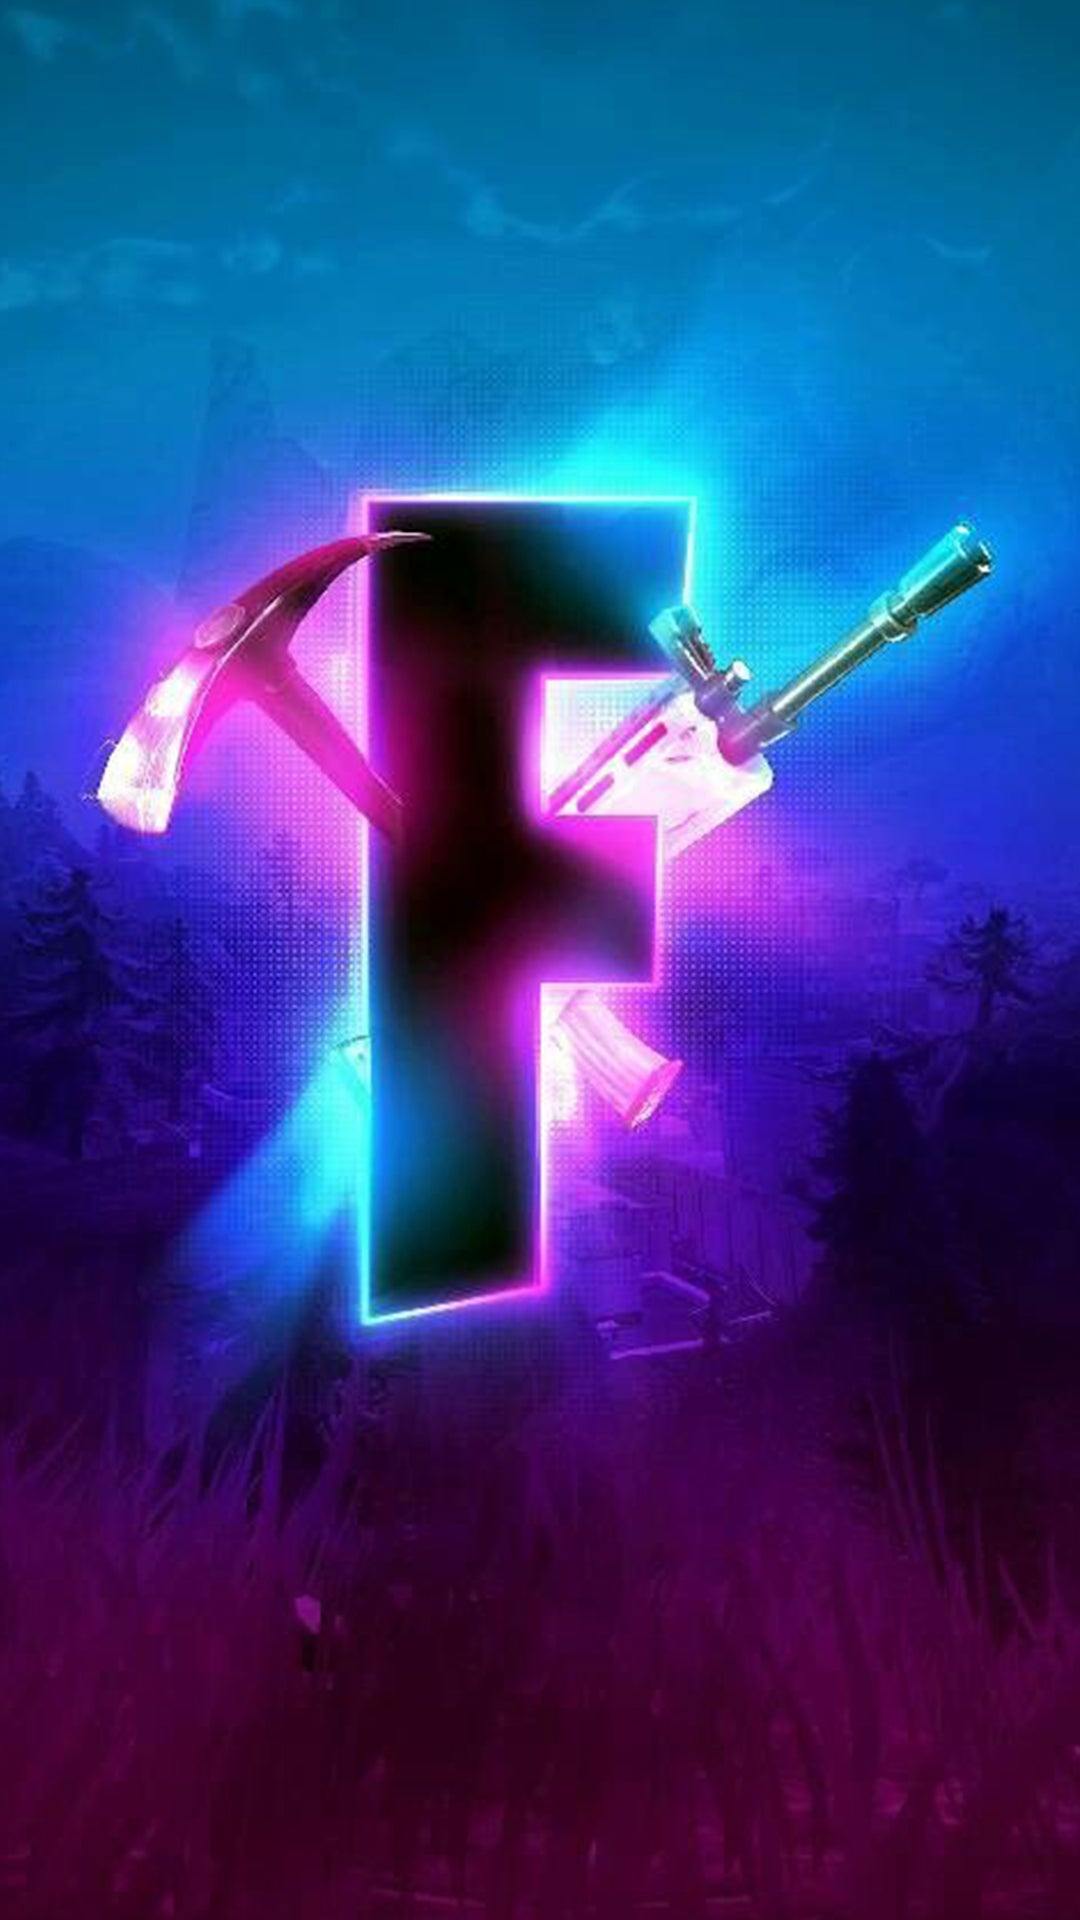 Fortnite Cool Wallpapers For Your Phone Images In 2019 Fortnite Costume For Kids